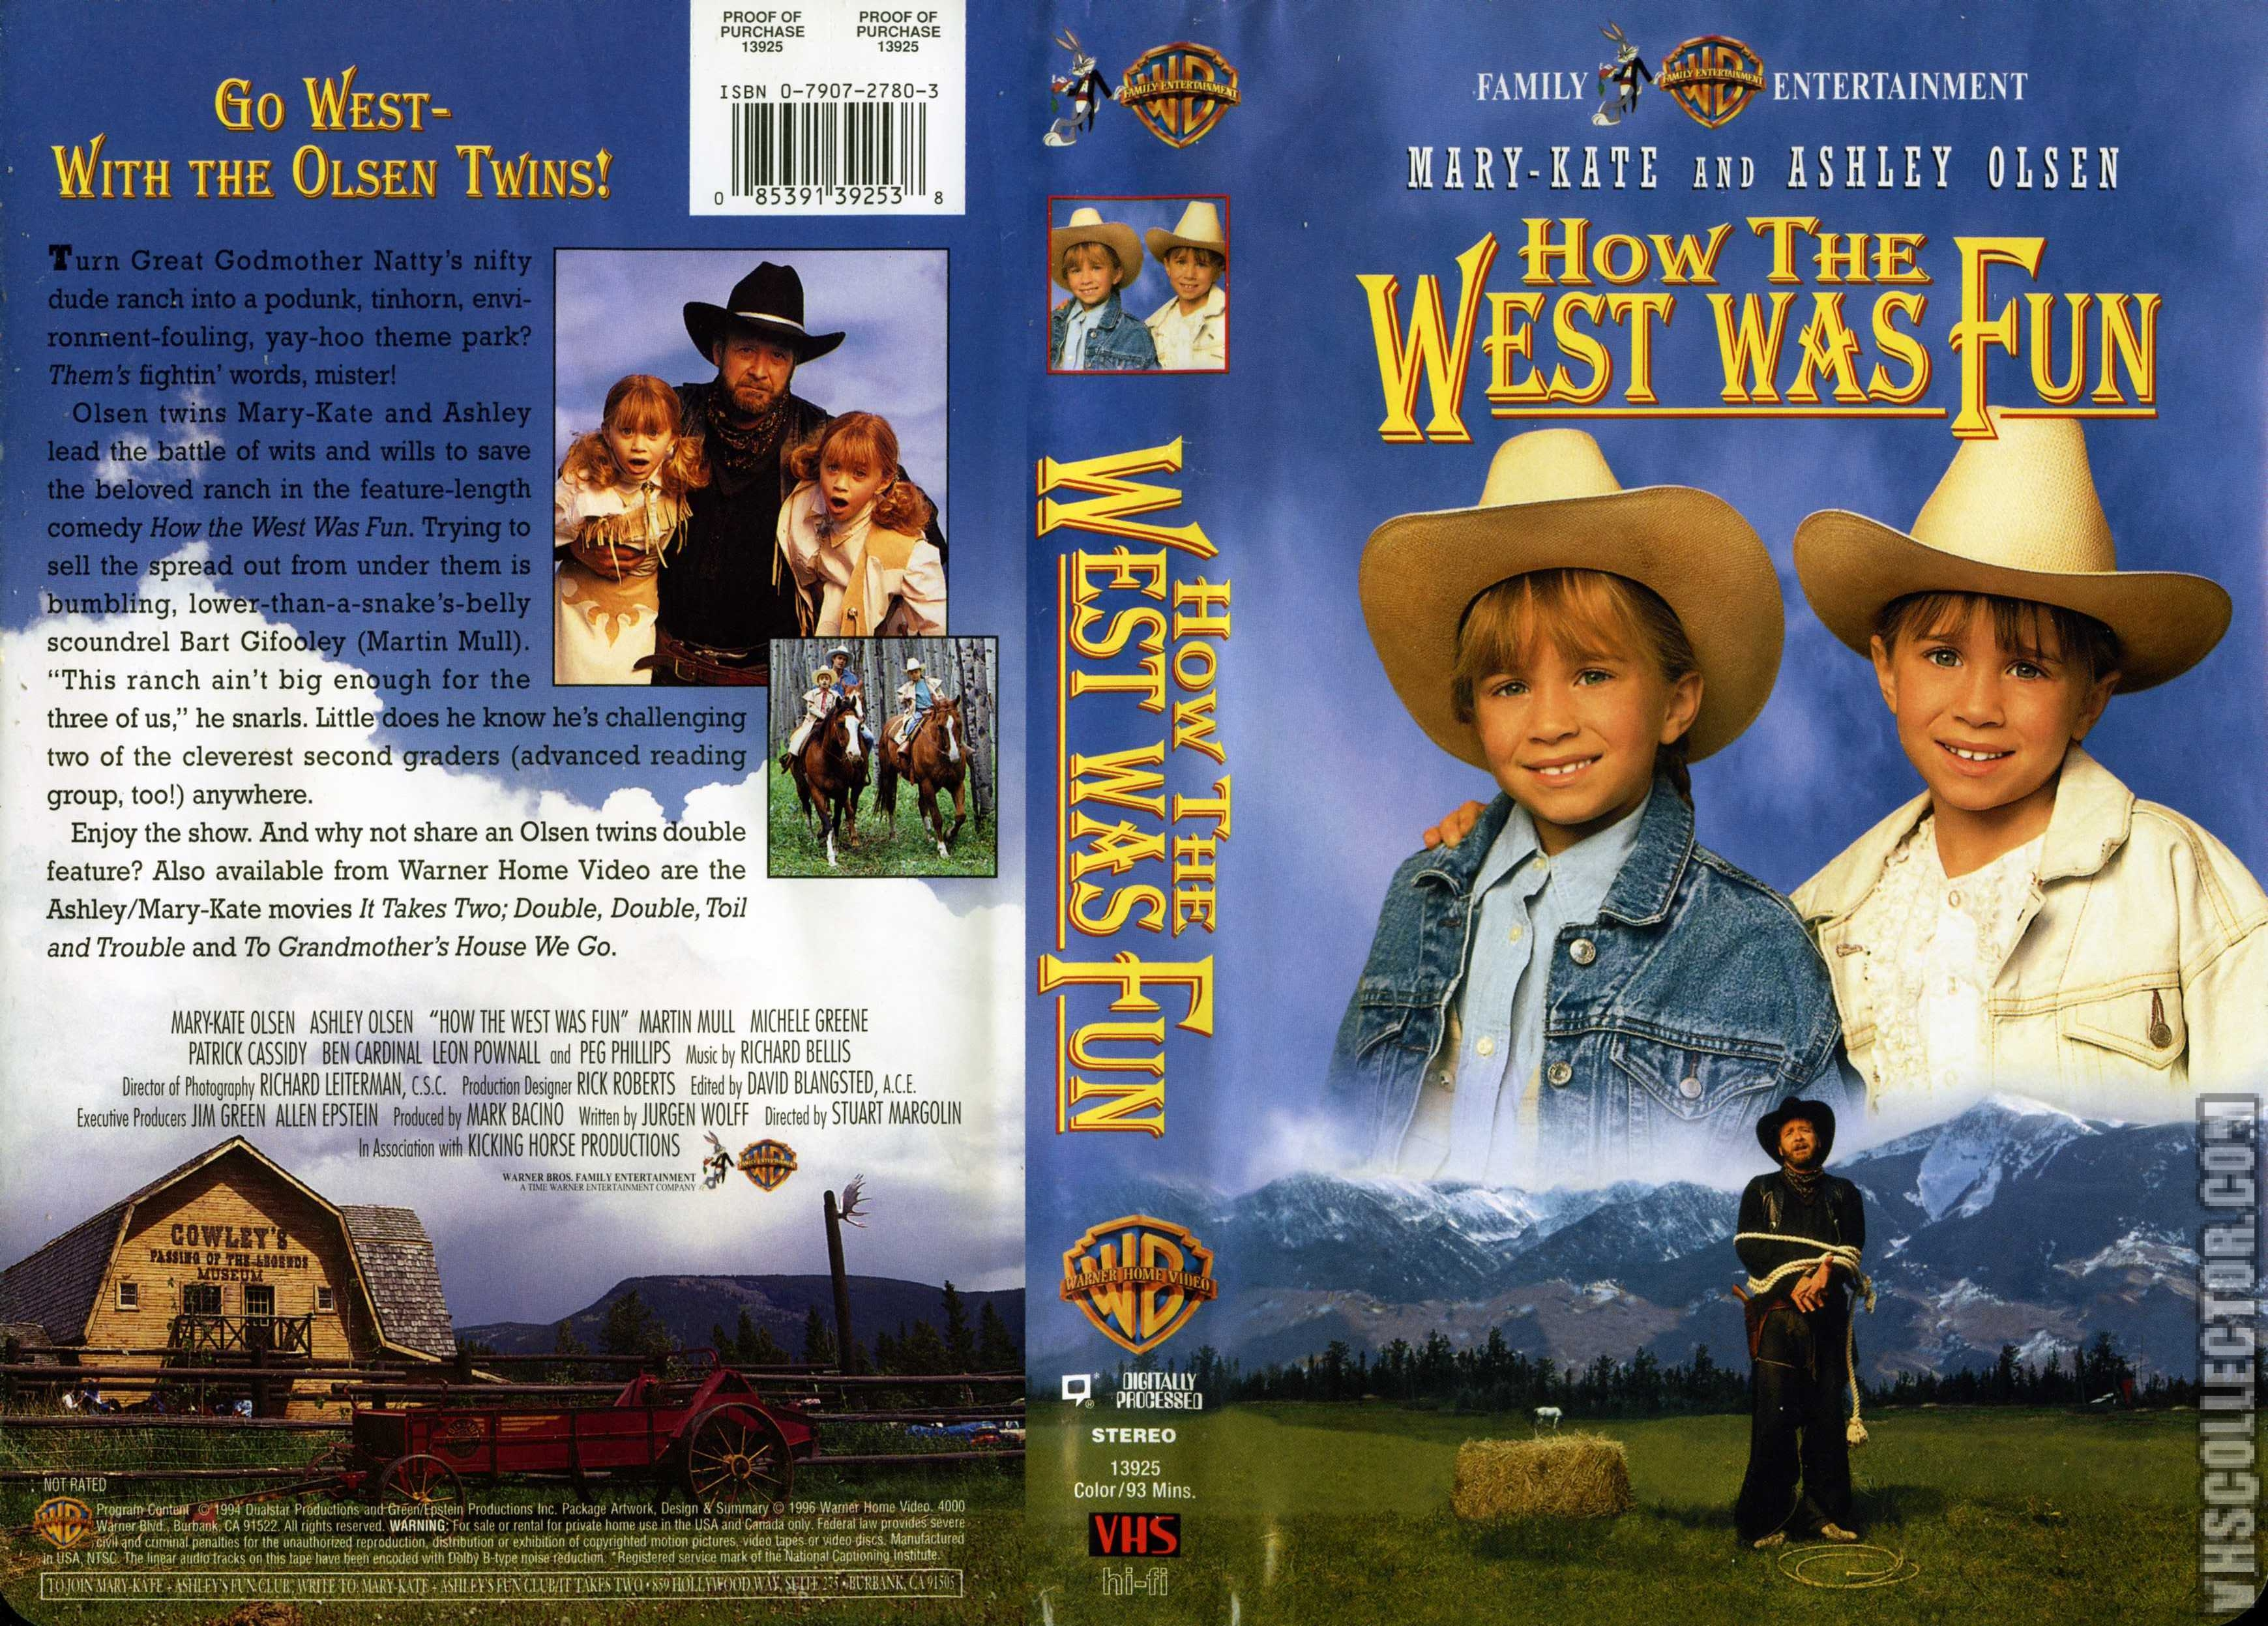 How the West Was Fun (1996-2003 VHS)